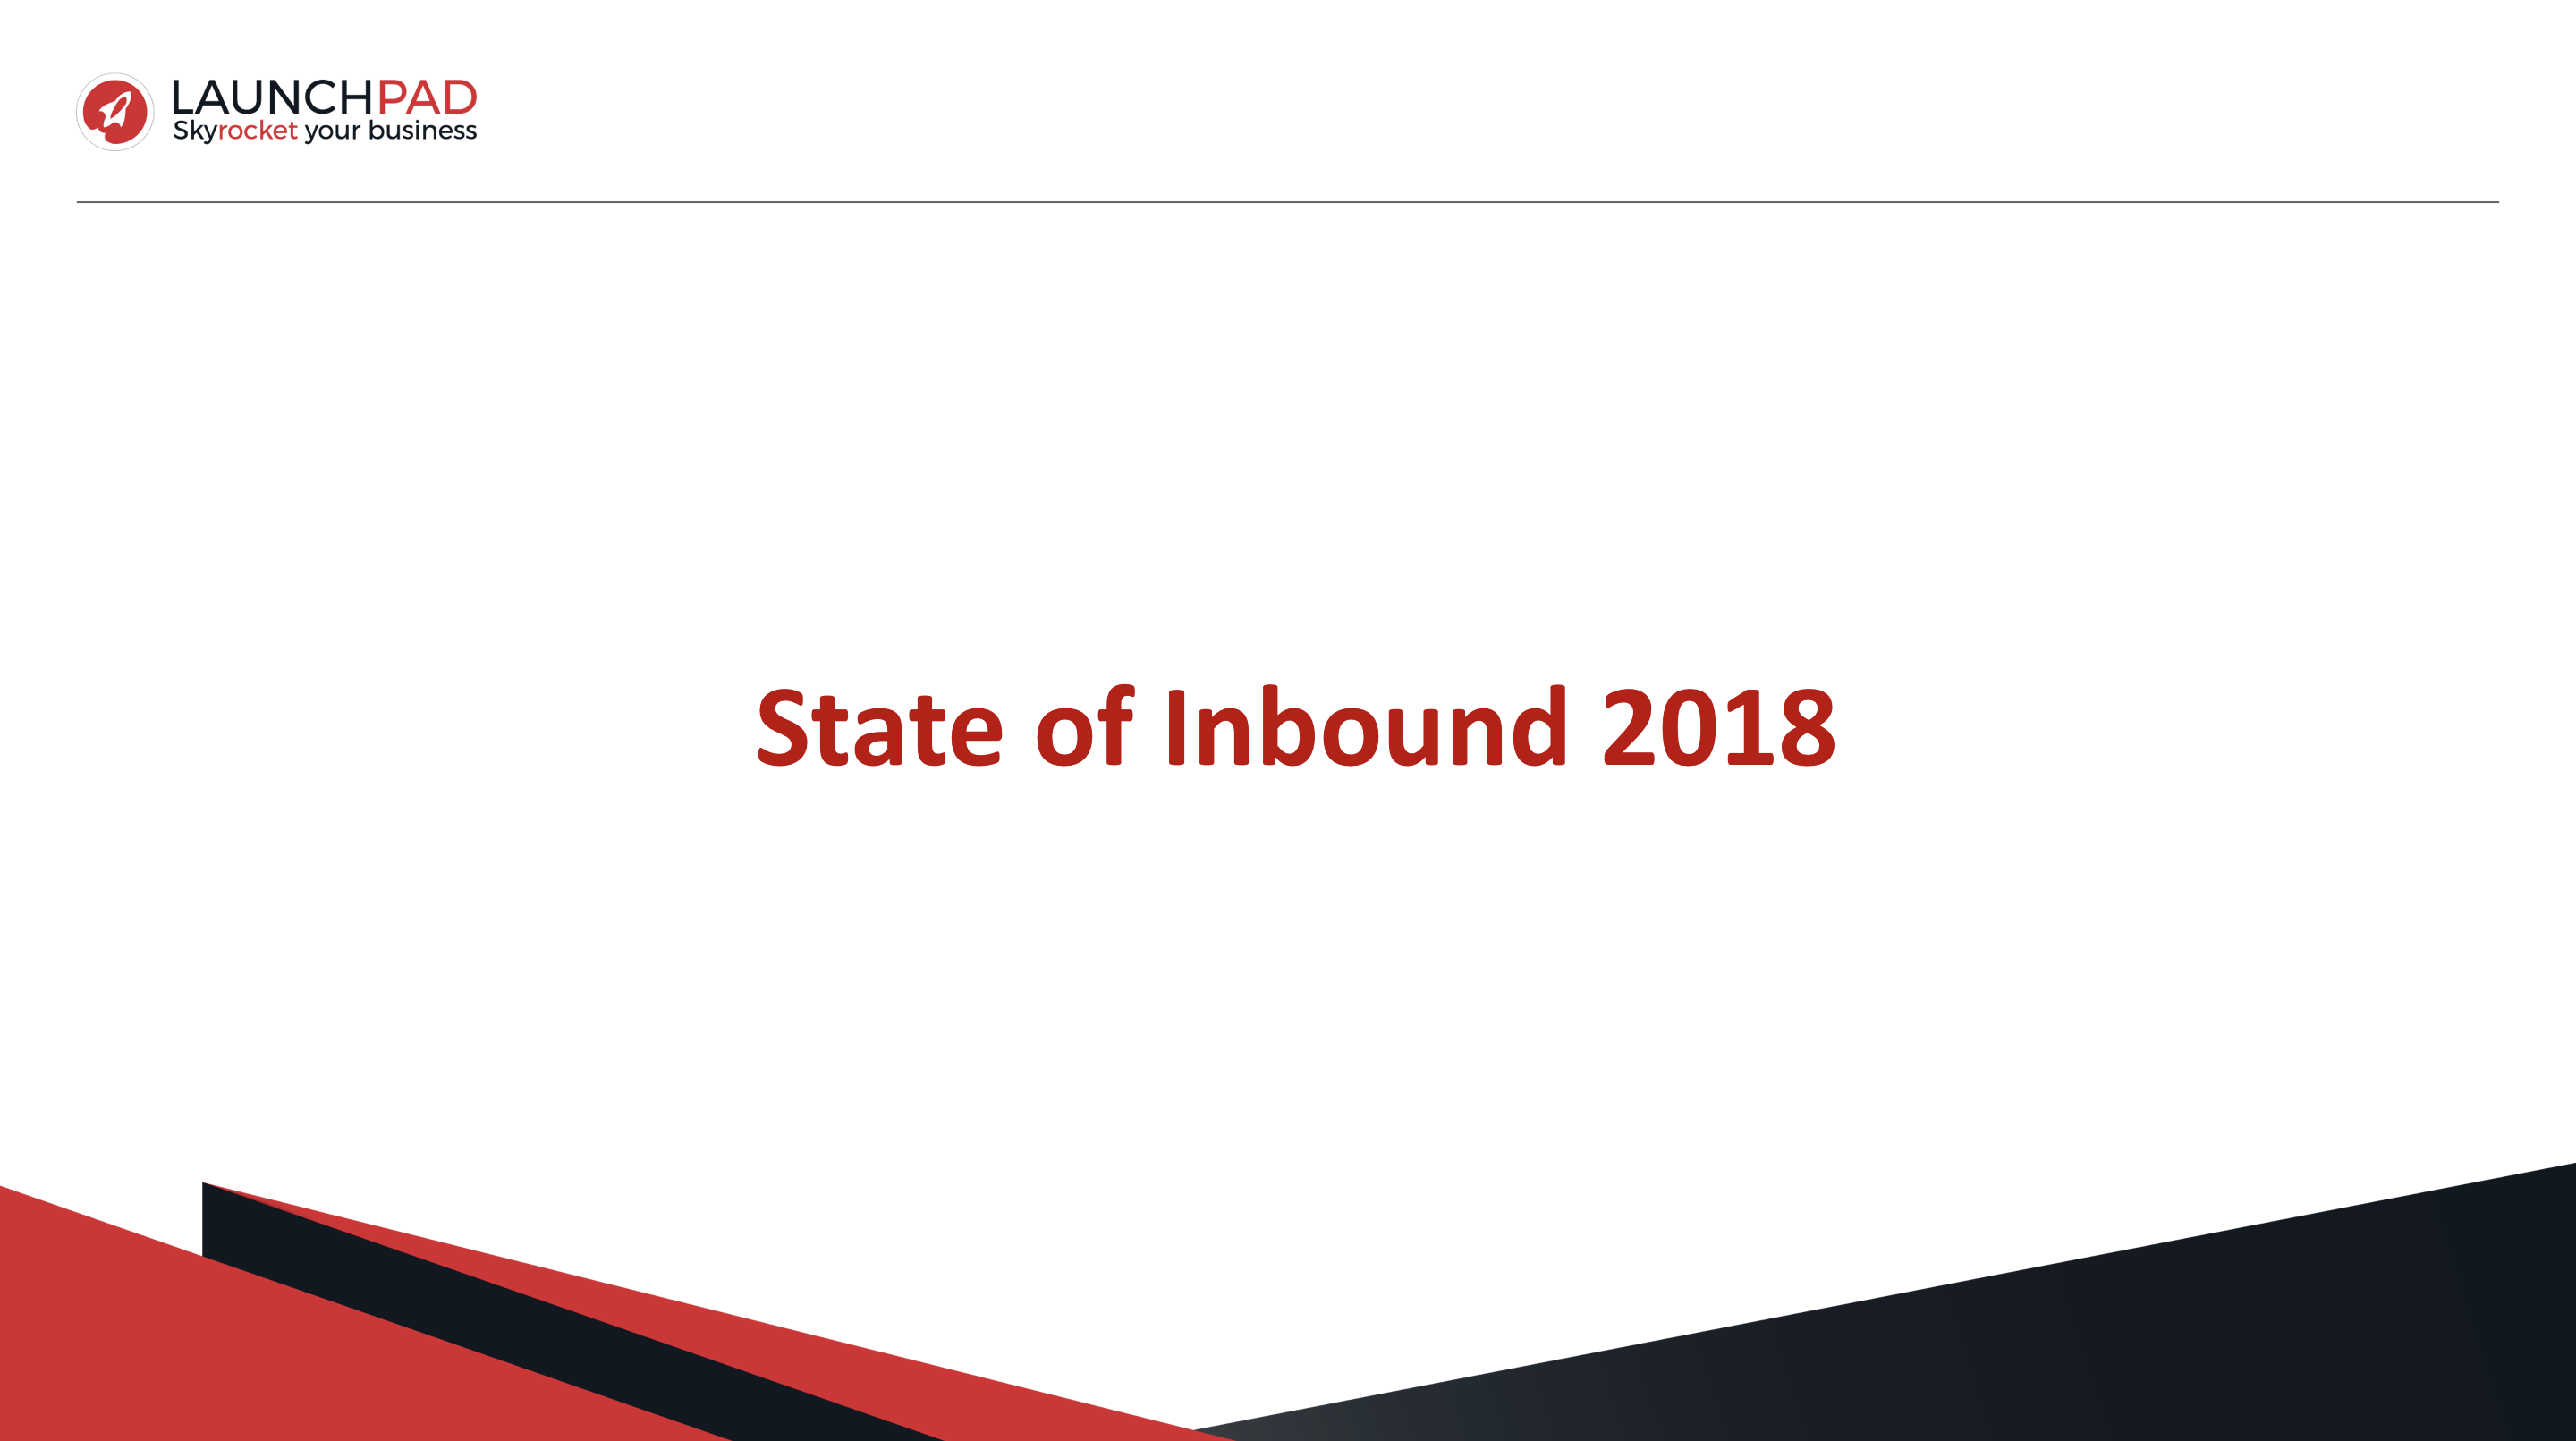 Launchpad State of Inbound 2018